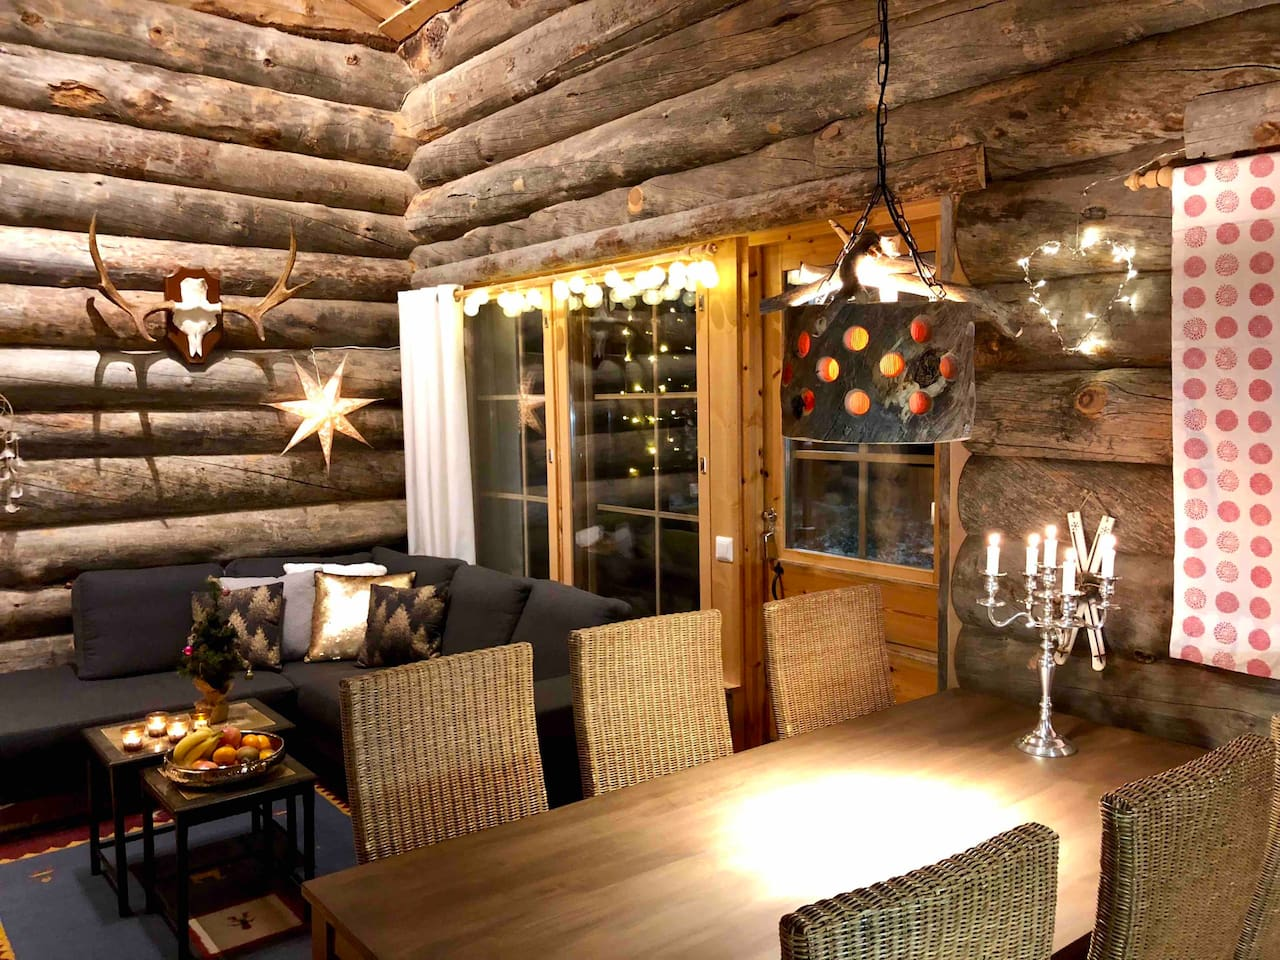 * Avoin ja tilava oh-keittiö.  * Open space living room and kitchen. There is an indoor sauna and a terrace heading towards the ski jumping tower.  * Free WIFI in the cabin.  * The cabin is made from authentic kelo timber from very old forests.